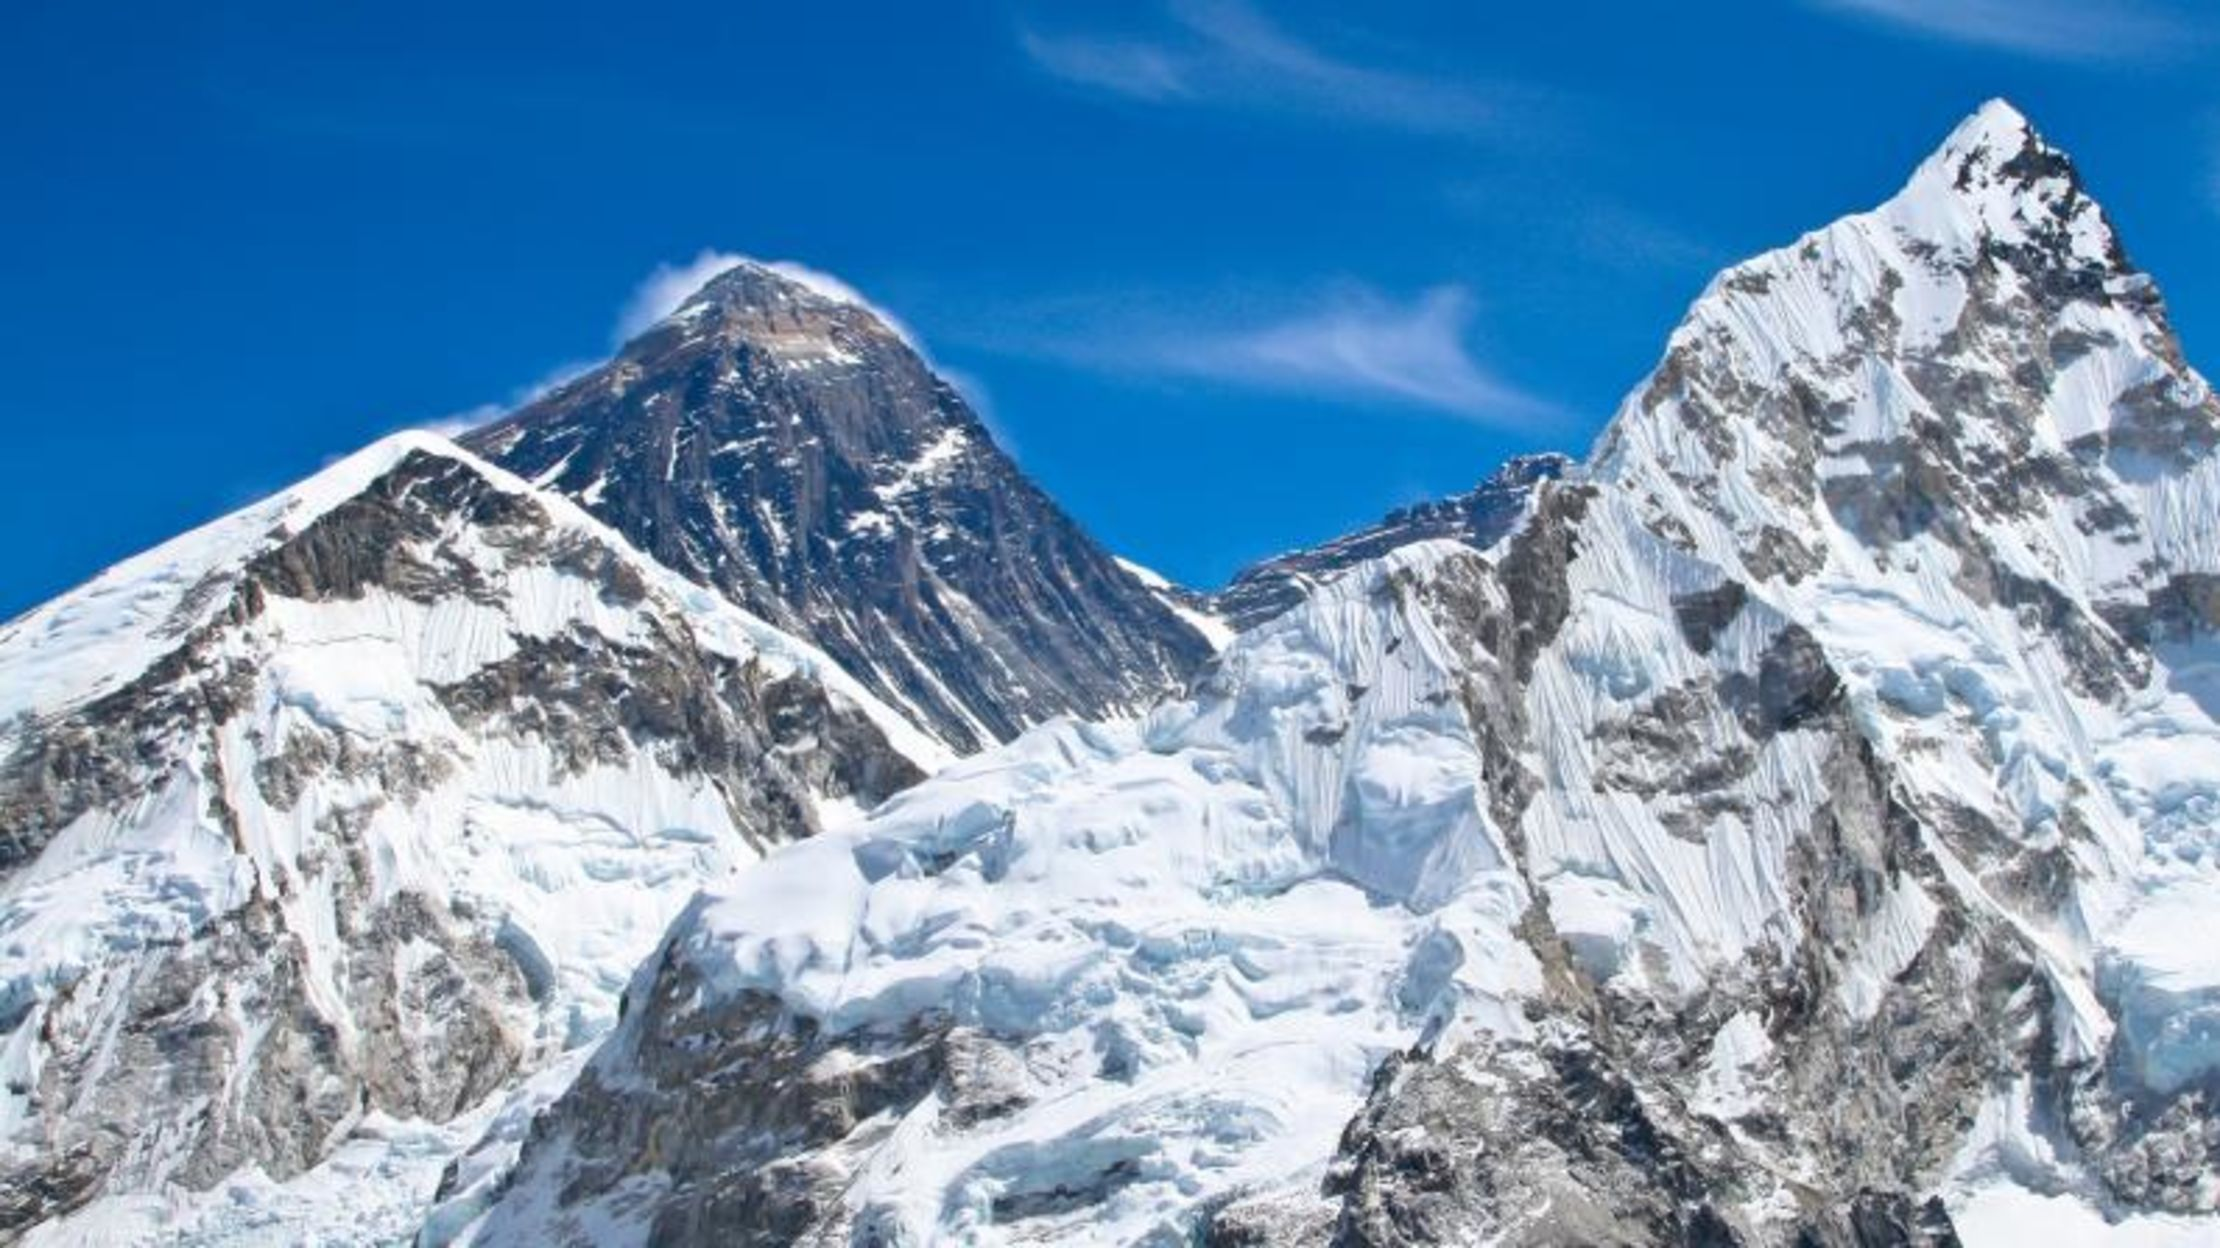 Nobody Reached the Top of Mount Everest in 2015